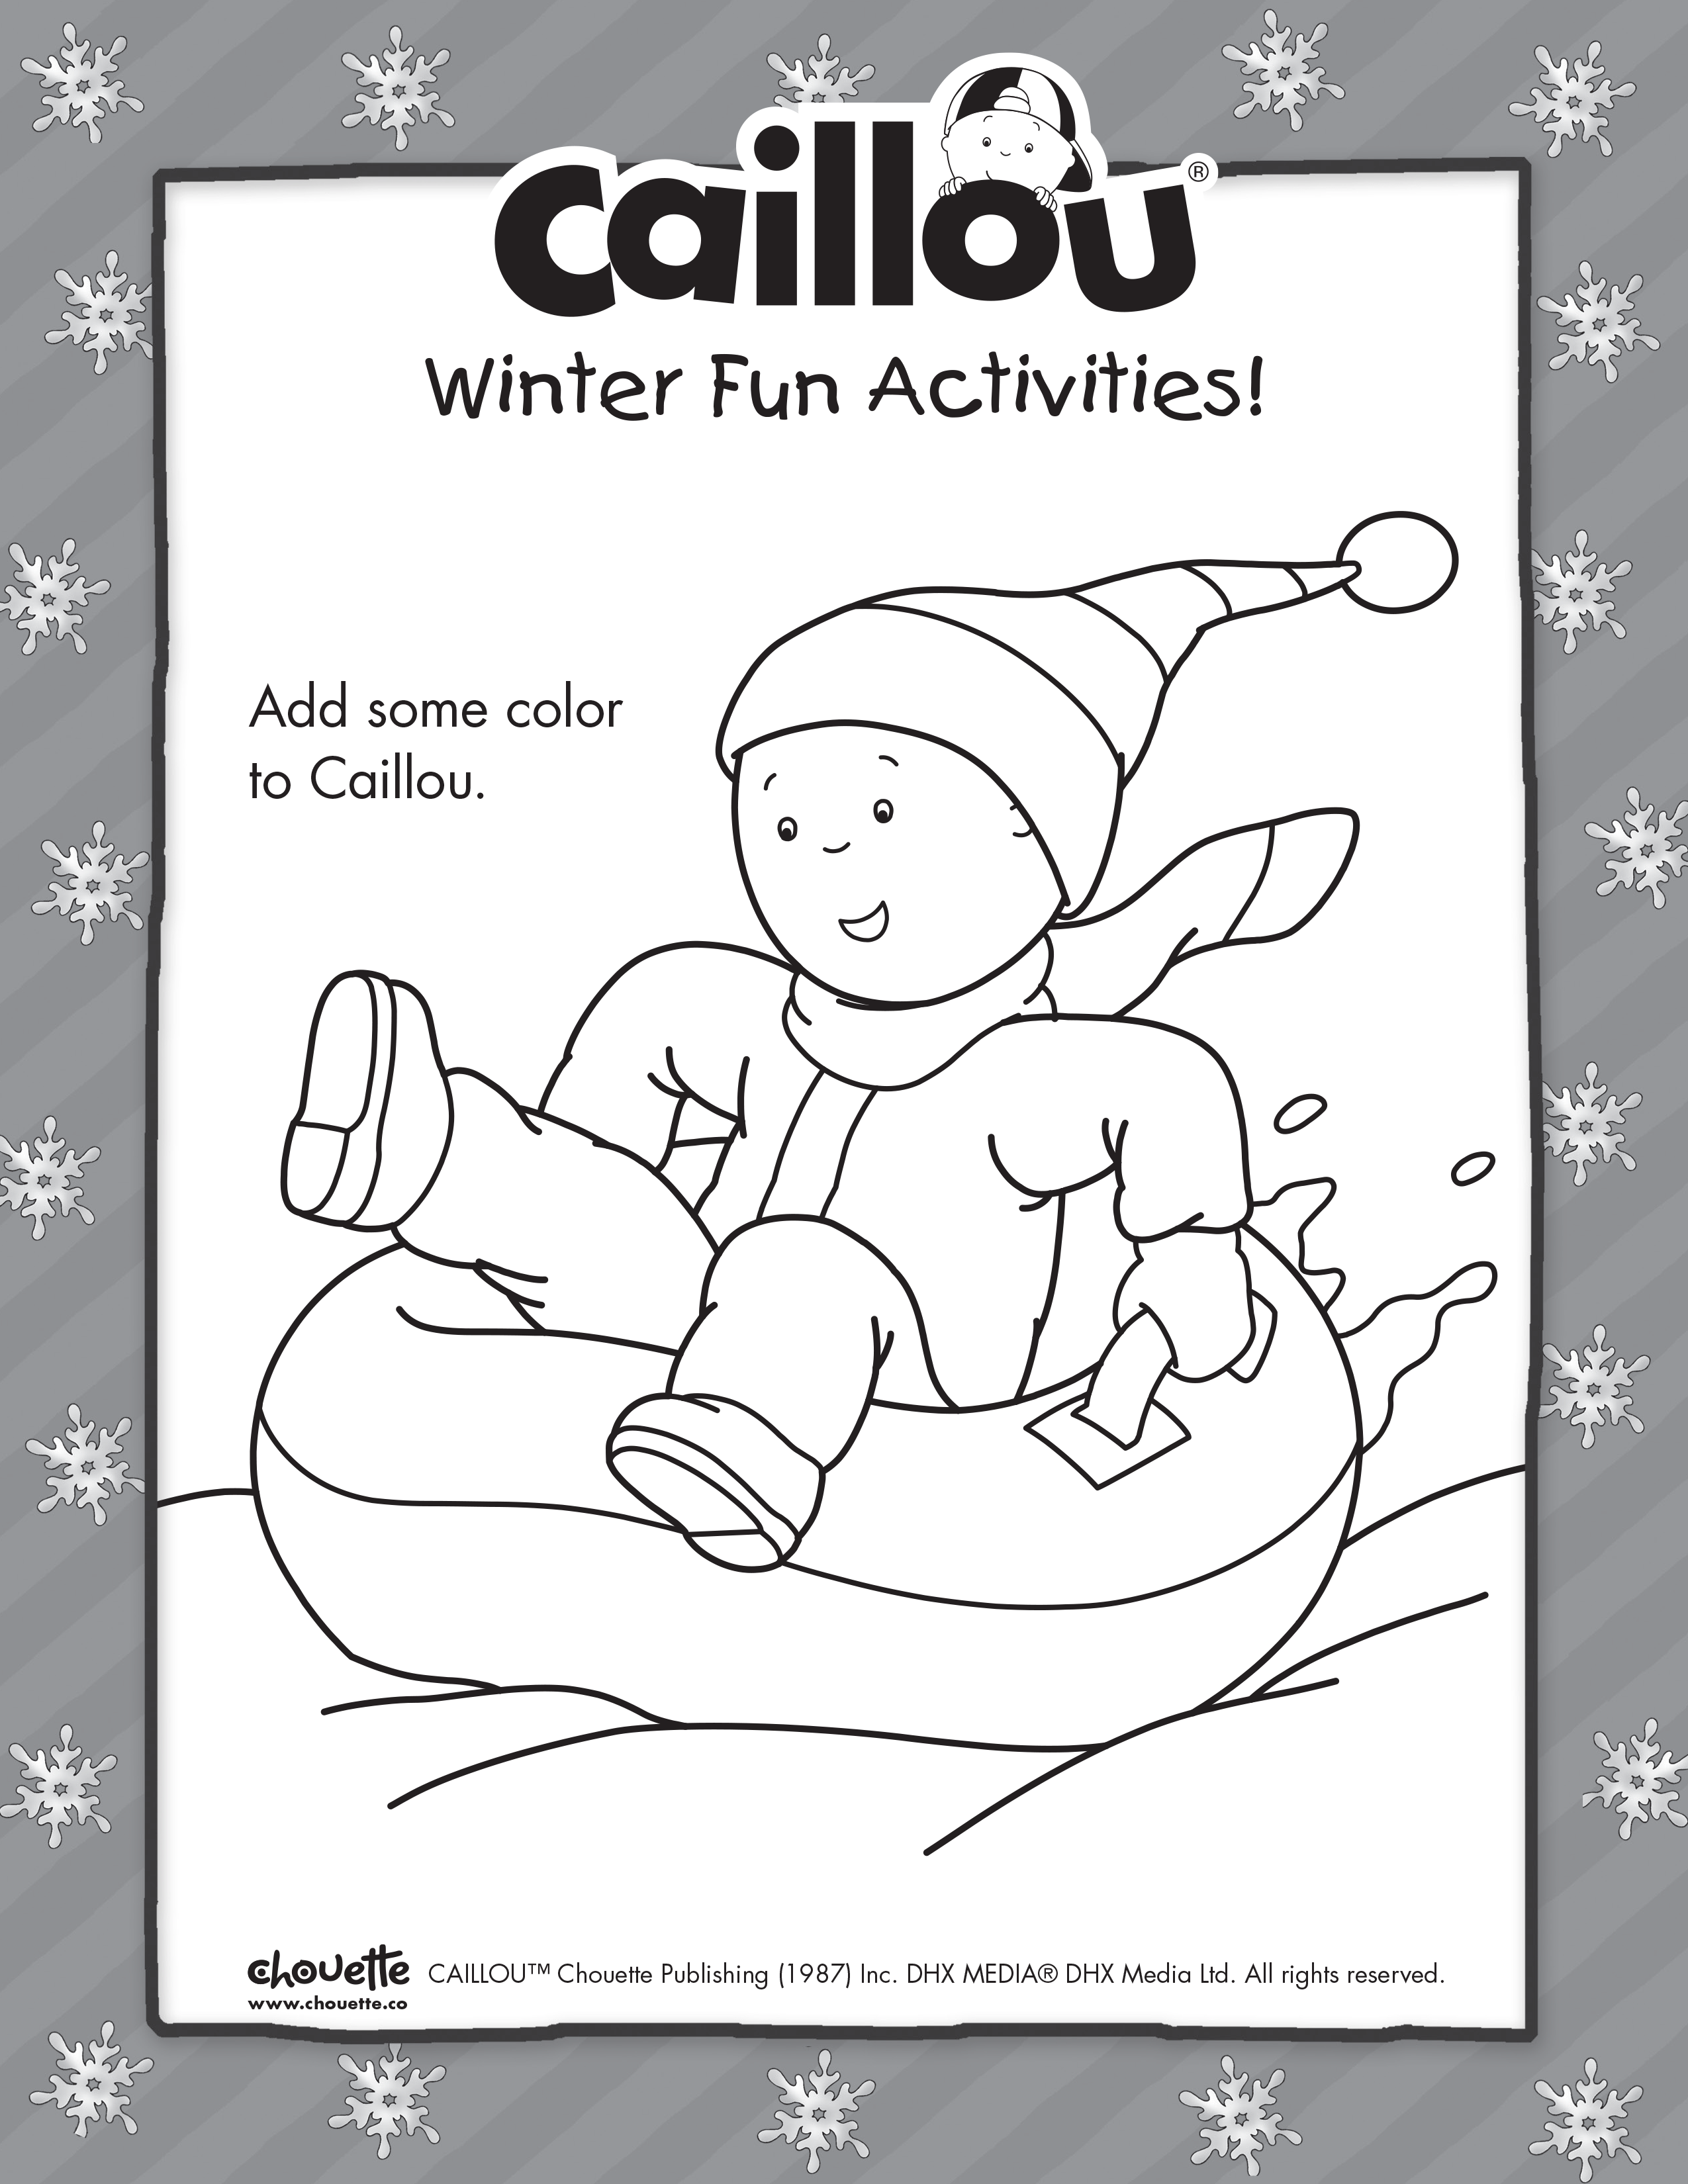 Pin By Caillou On 25 Days Of Caillou